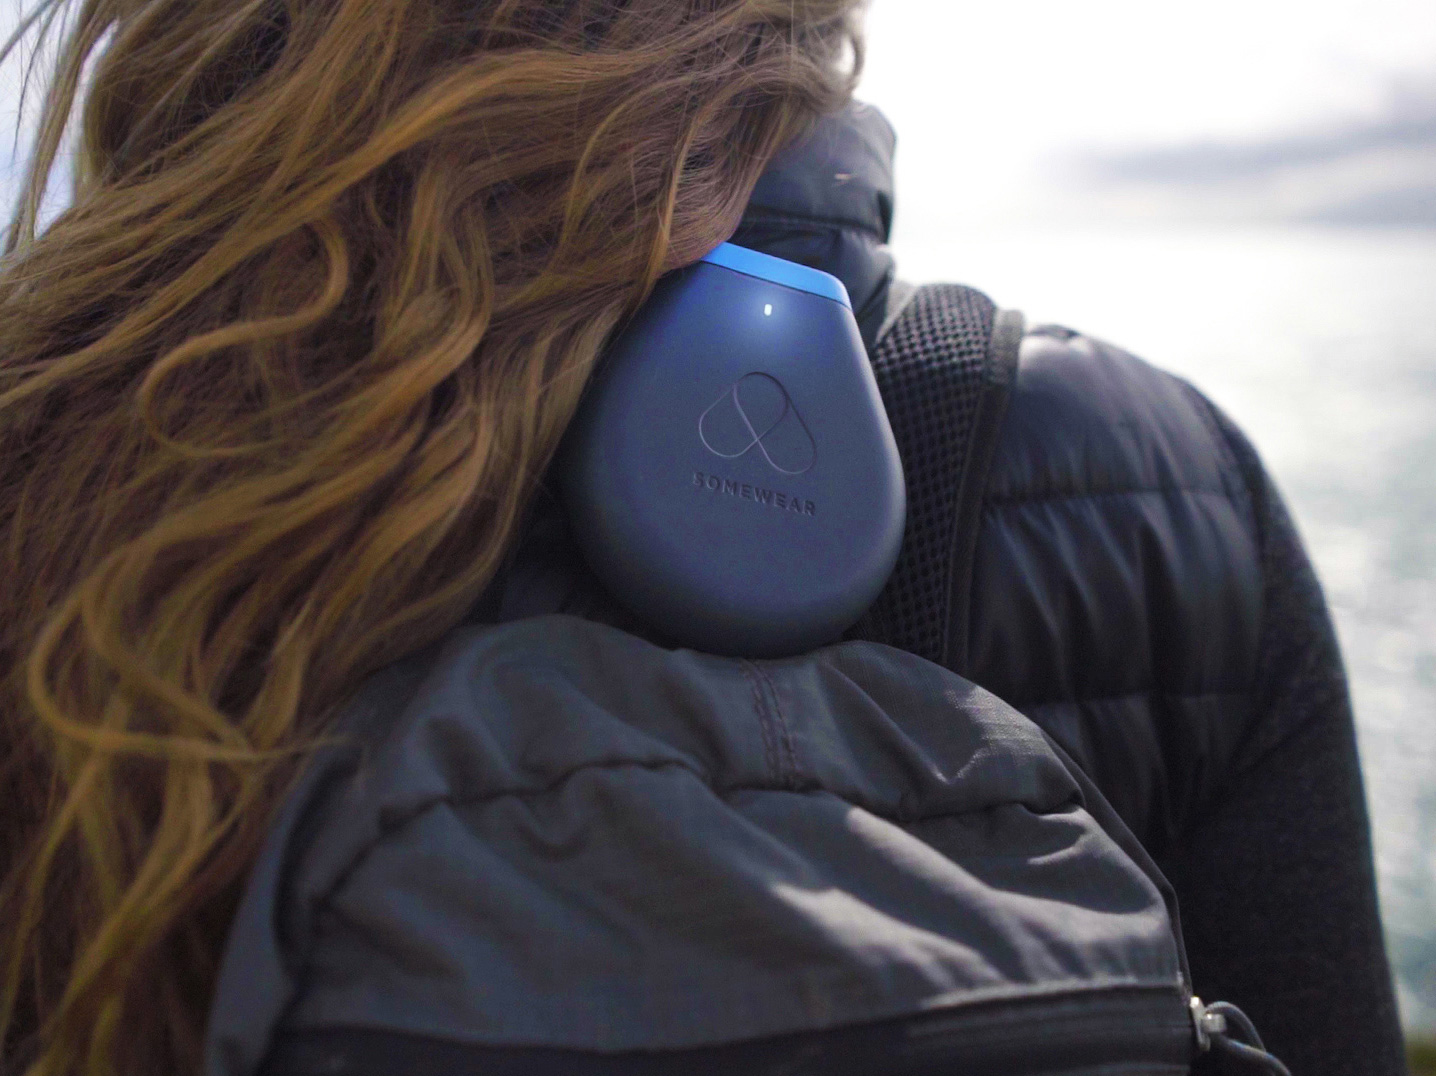 Somewear's Global Hotspot Keeps You Connected for Portable Piece of Mind at werd.com